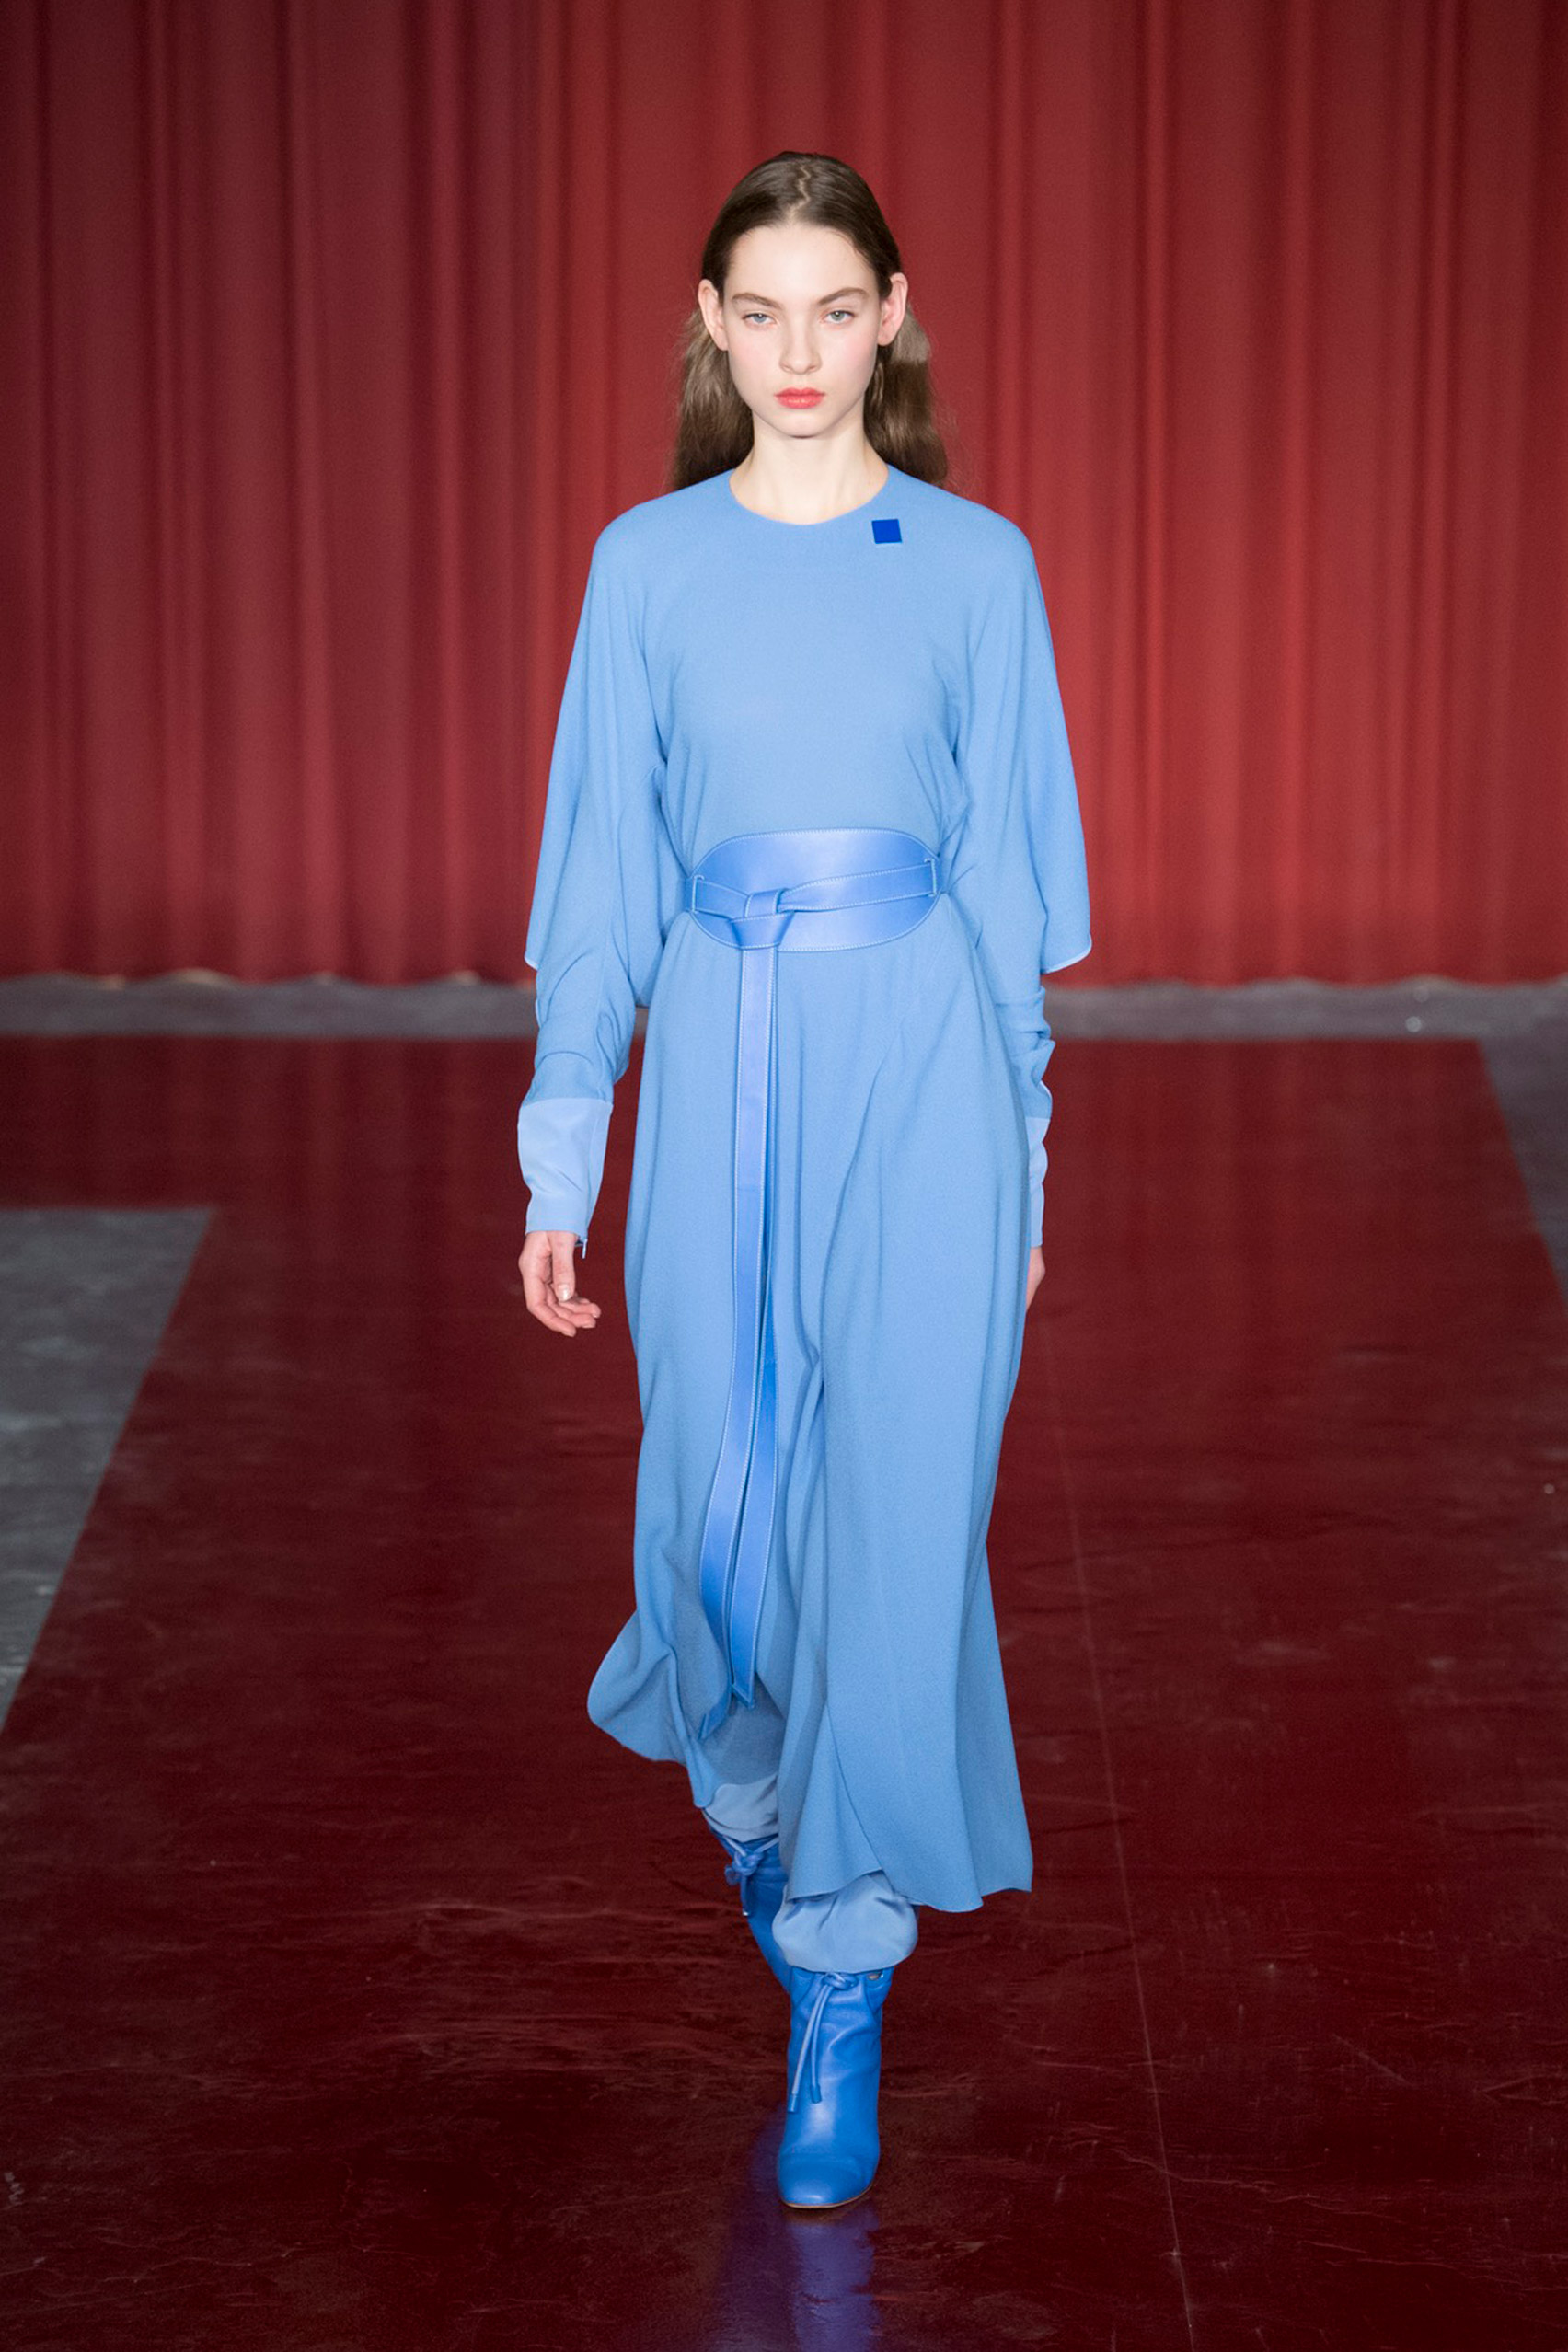 richard-nicoll-pantone-blue-london-fashion-week_dezeen_1704_col_1.jpg